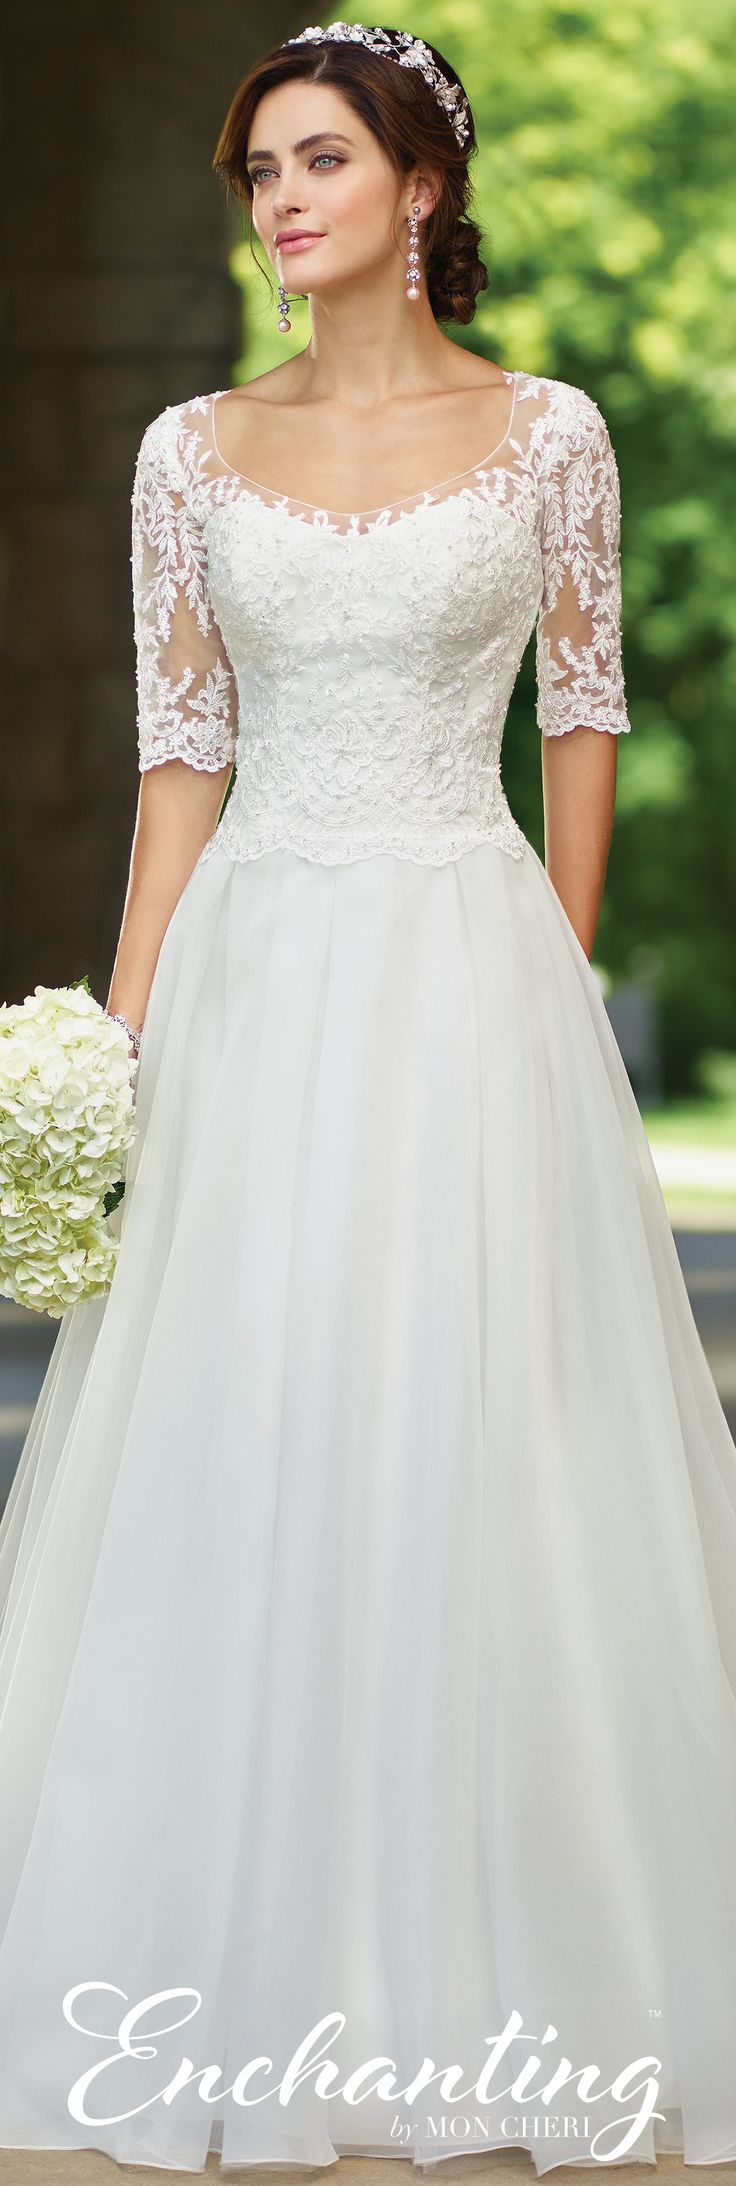 Enchanting by Mon Cheri Spring 2017 Wedding Gown Collection - Style No. 117177 - organza and lace A-line wedding dress with sleeves